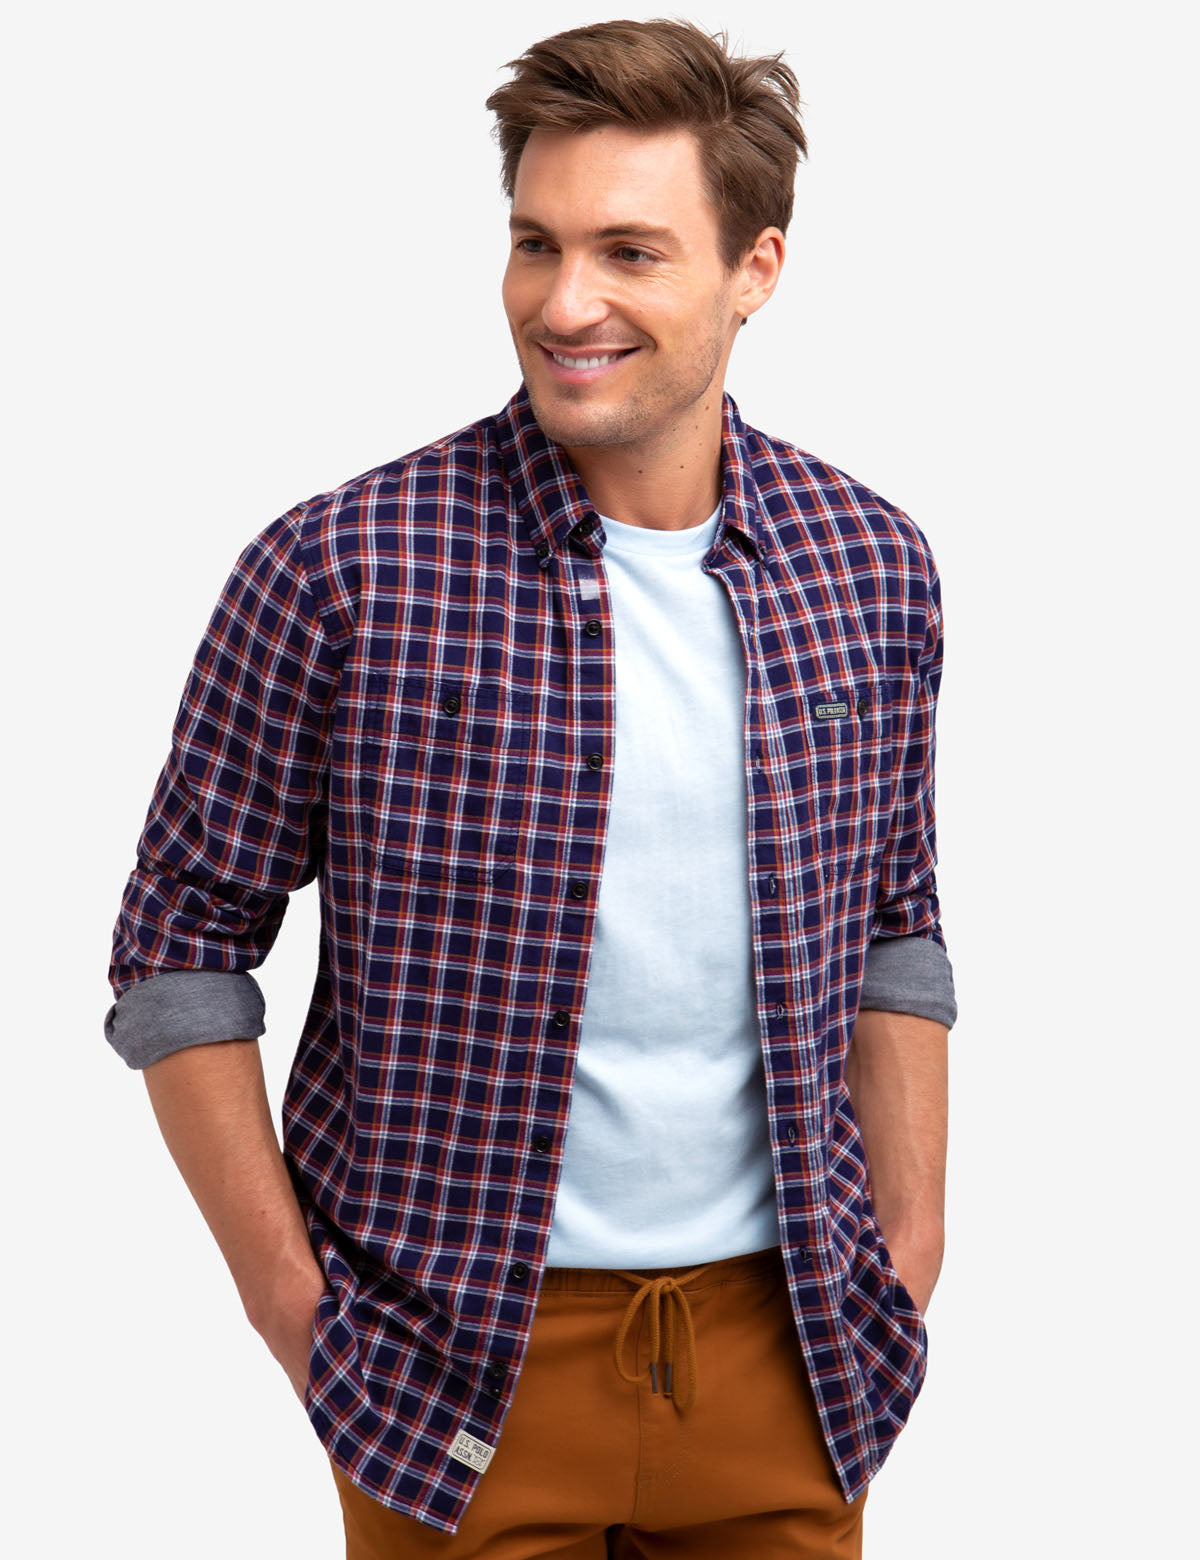 PLAID SHIRT WITH CHAMBRAY INTERIOR